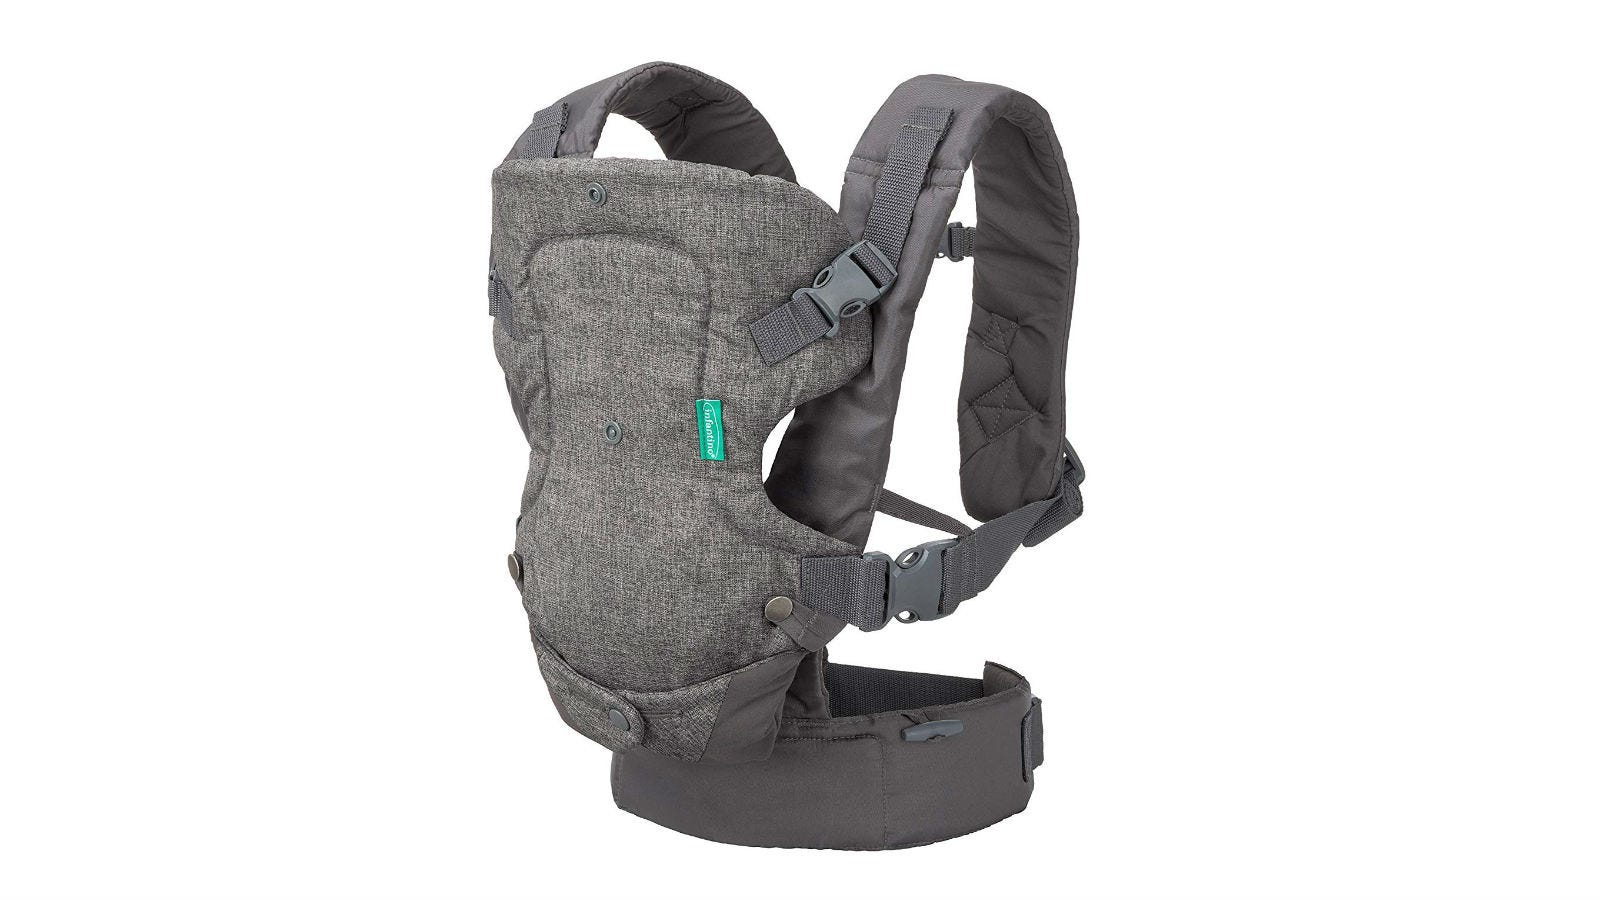 The Infantino Flip 4-in-1 Convertible Baby Carrier.